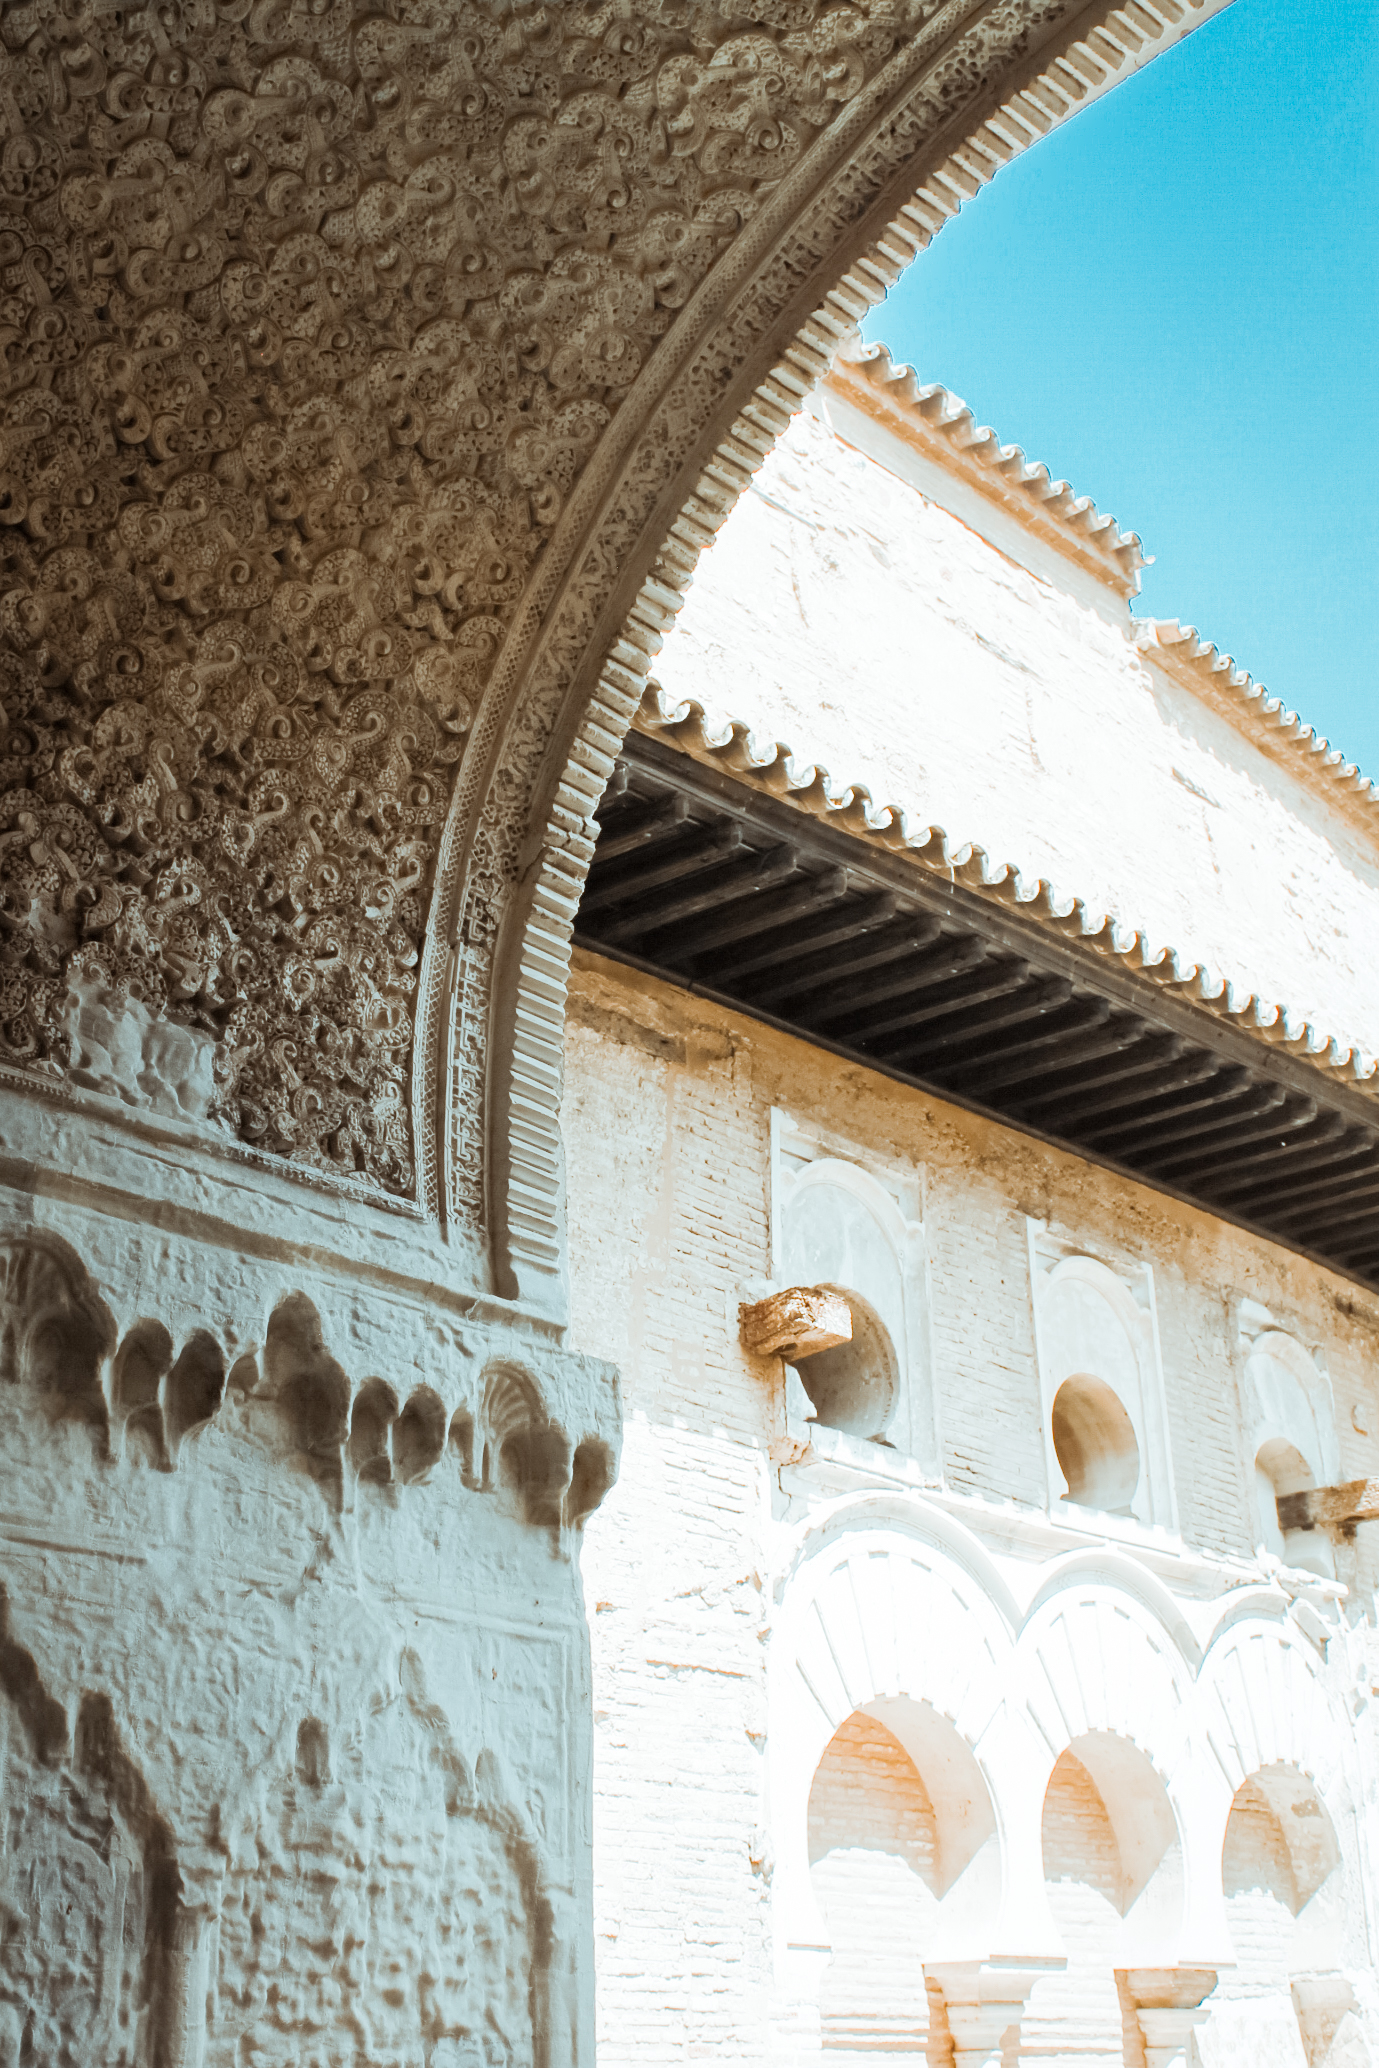 Palace Arches with Arabic Inscriptions